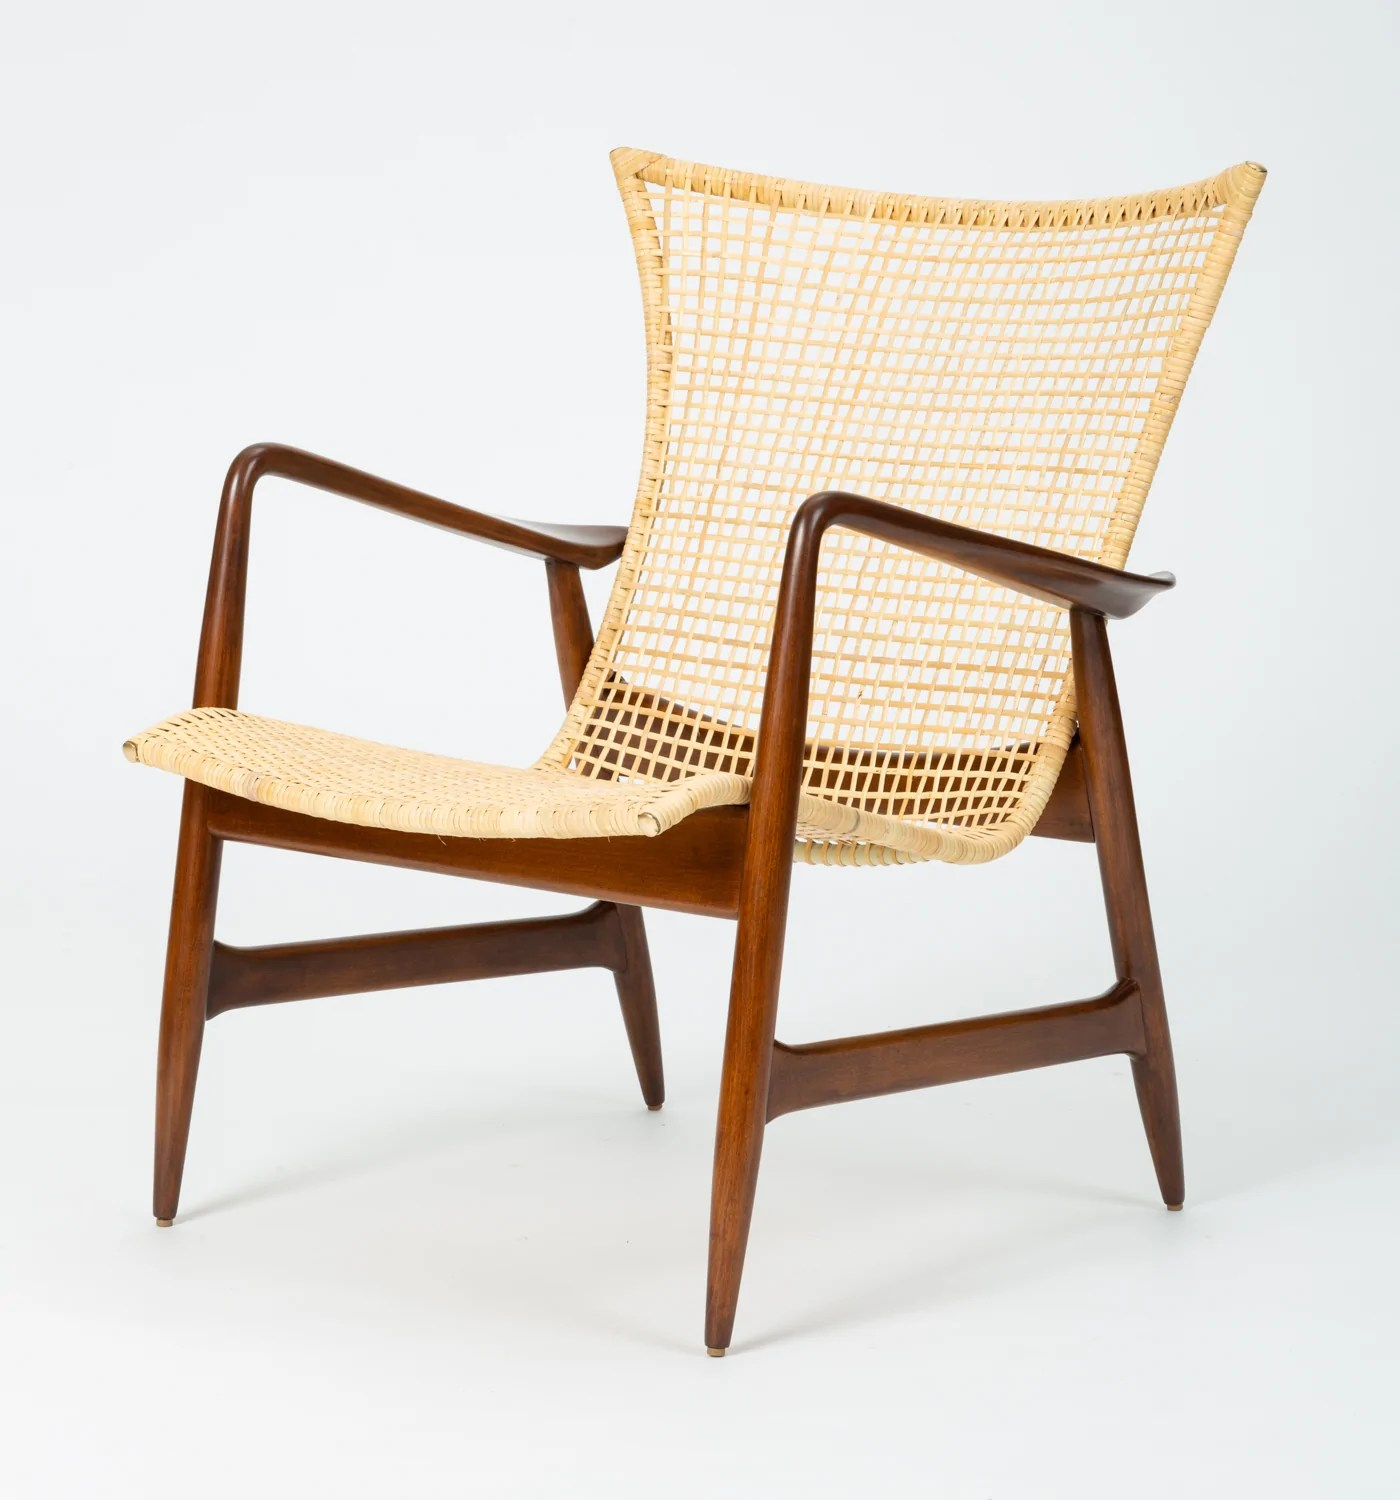 Selig Chair Lounge Chair With Cane Seat By Ib Kofod Larsen For Selig